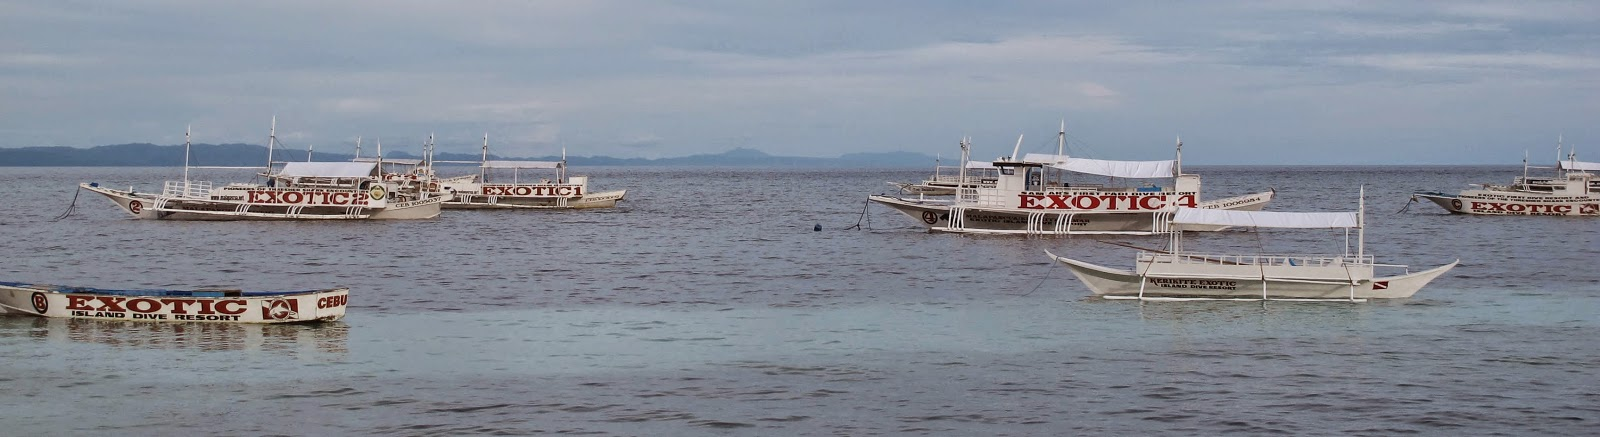 Some of Exotics dive boats